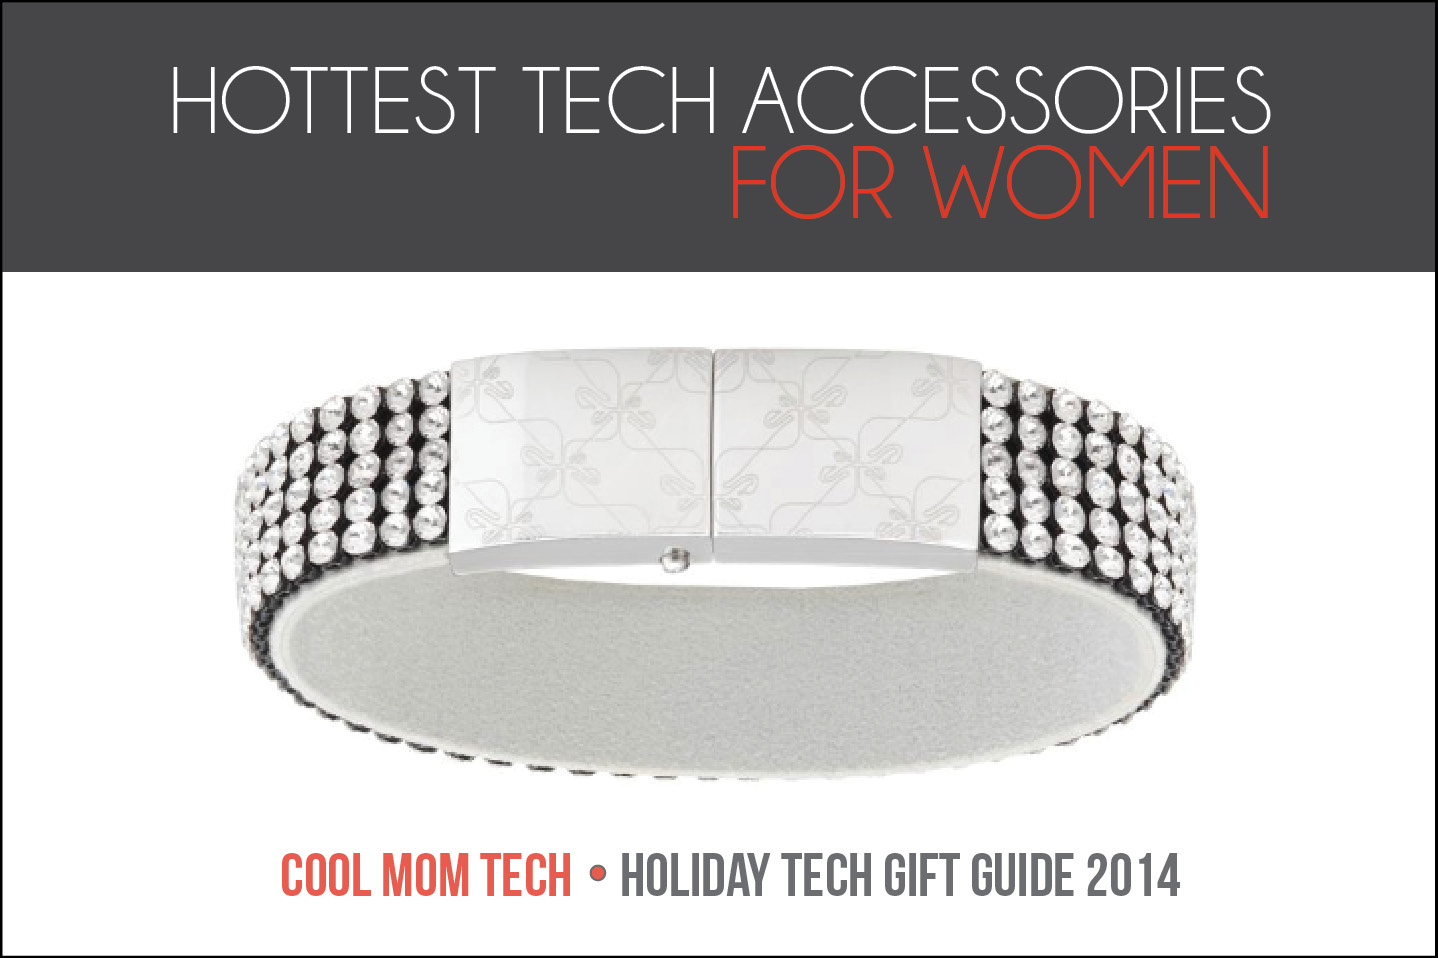 12 stylish tech gifts for gadget lovers with great taste: Holiday Tech Gifts 2014